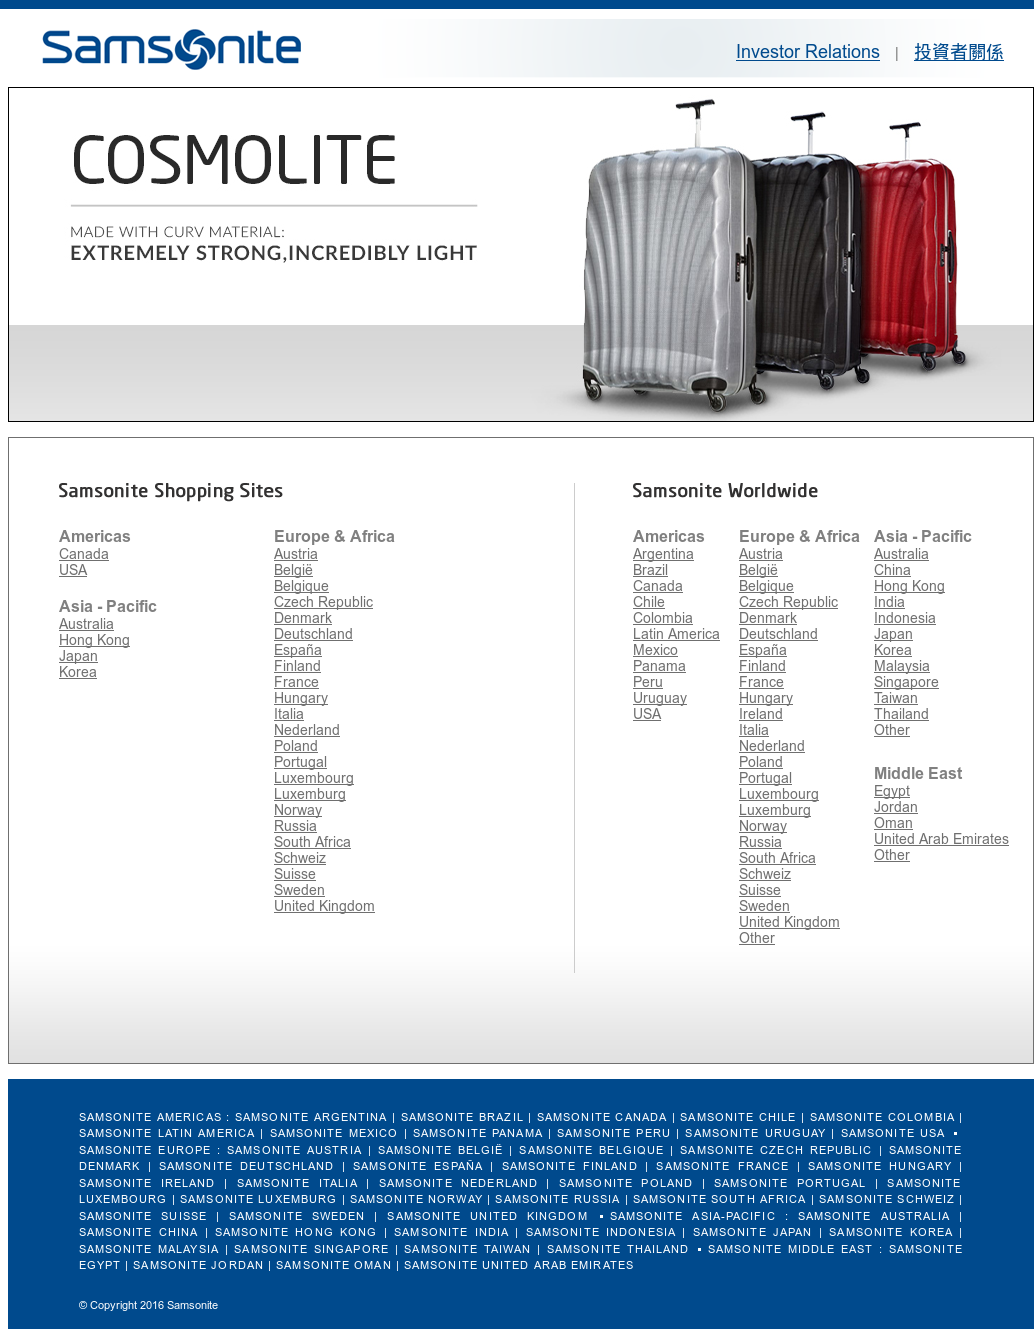 Samsonite Competitors 9cd7d5ecbd4